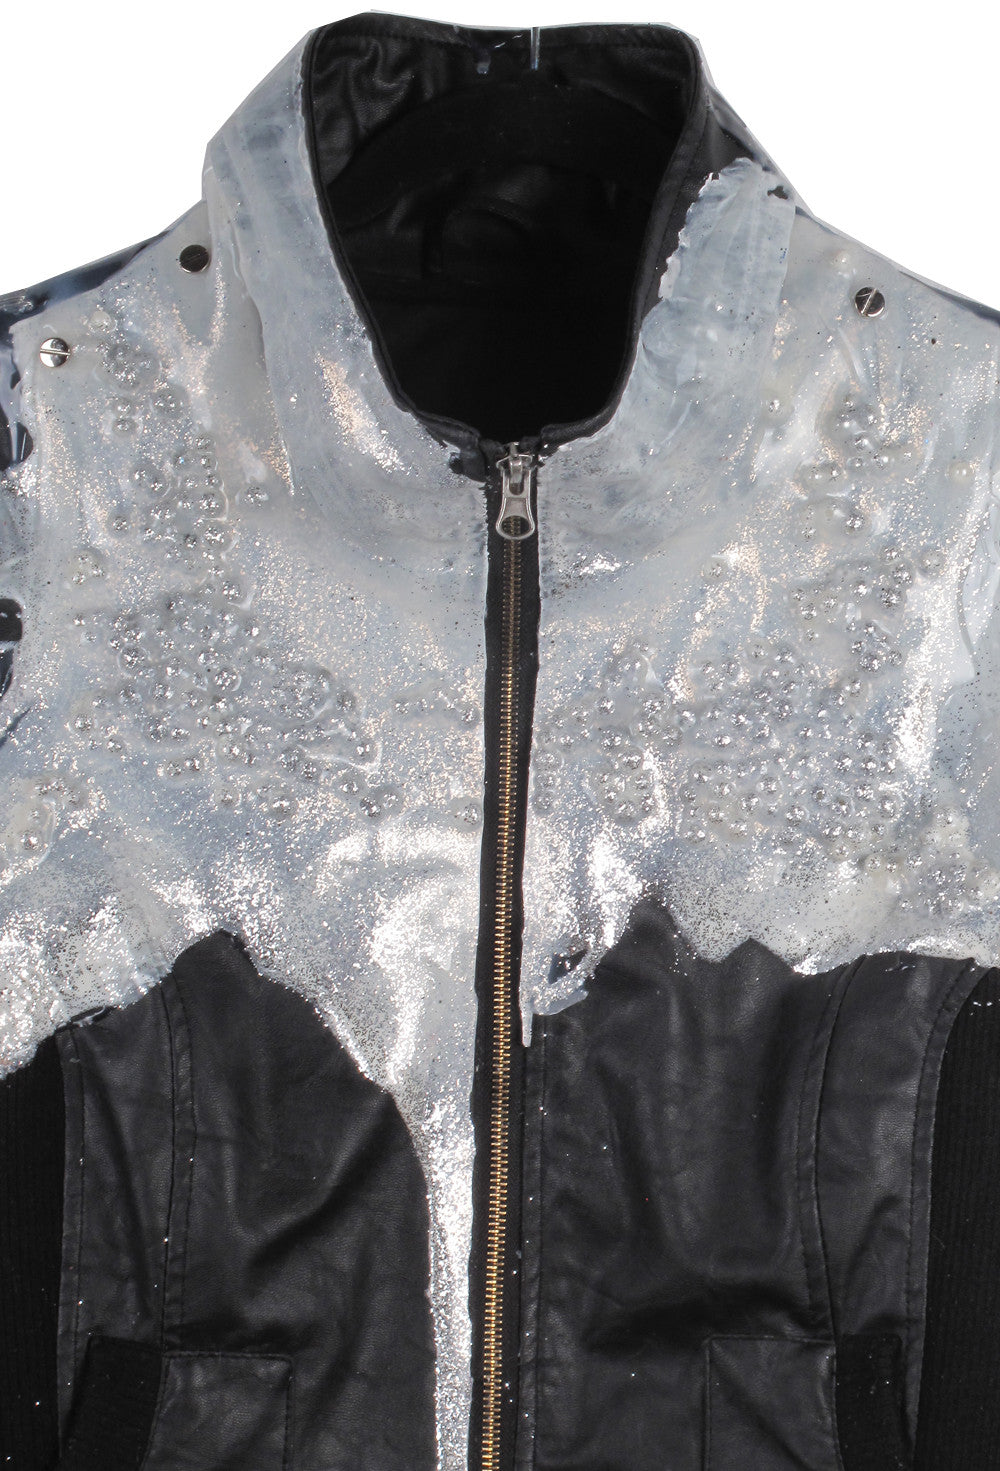 SSIK ONE OF A KIND Silicon Sparkle Pearl Drip Jacket - AVAILABLE FOR  IMMEDIATE DELIVERY SIZE S/M